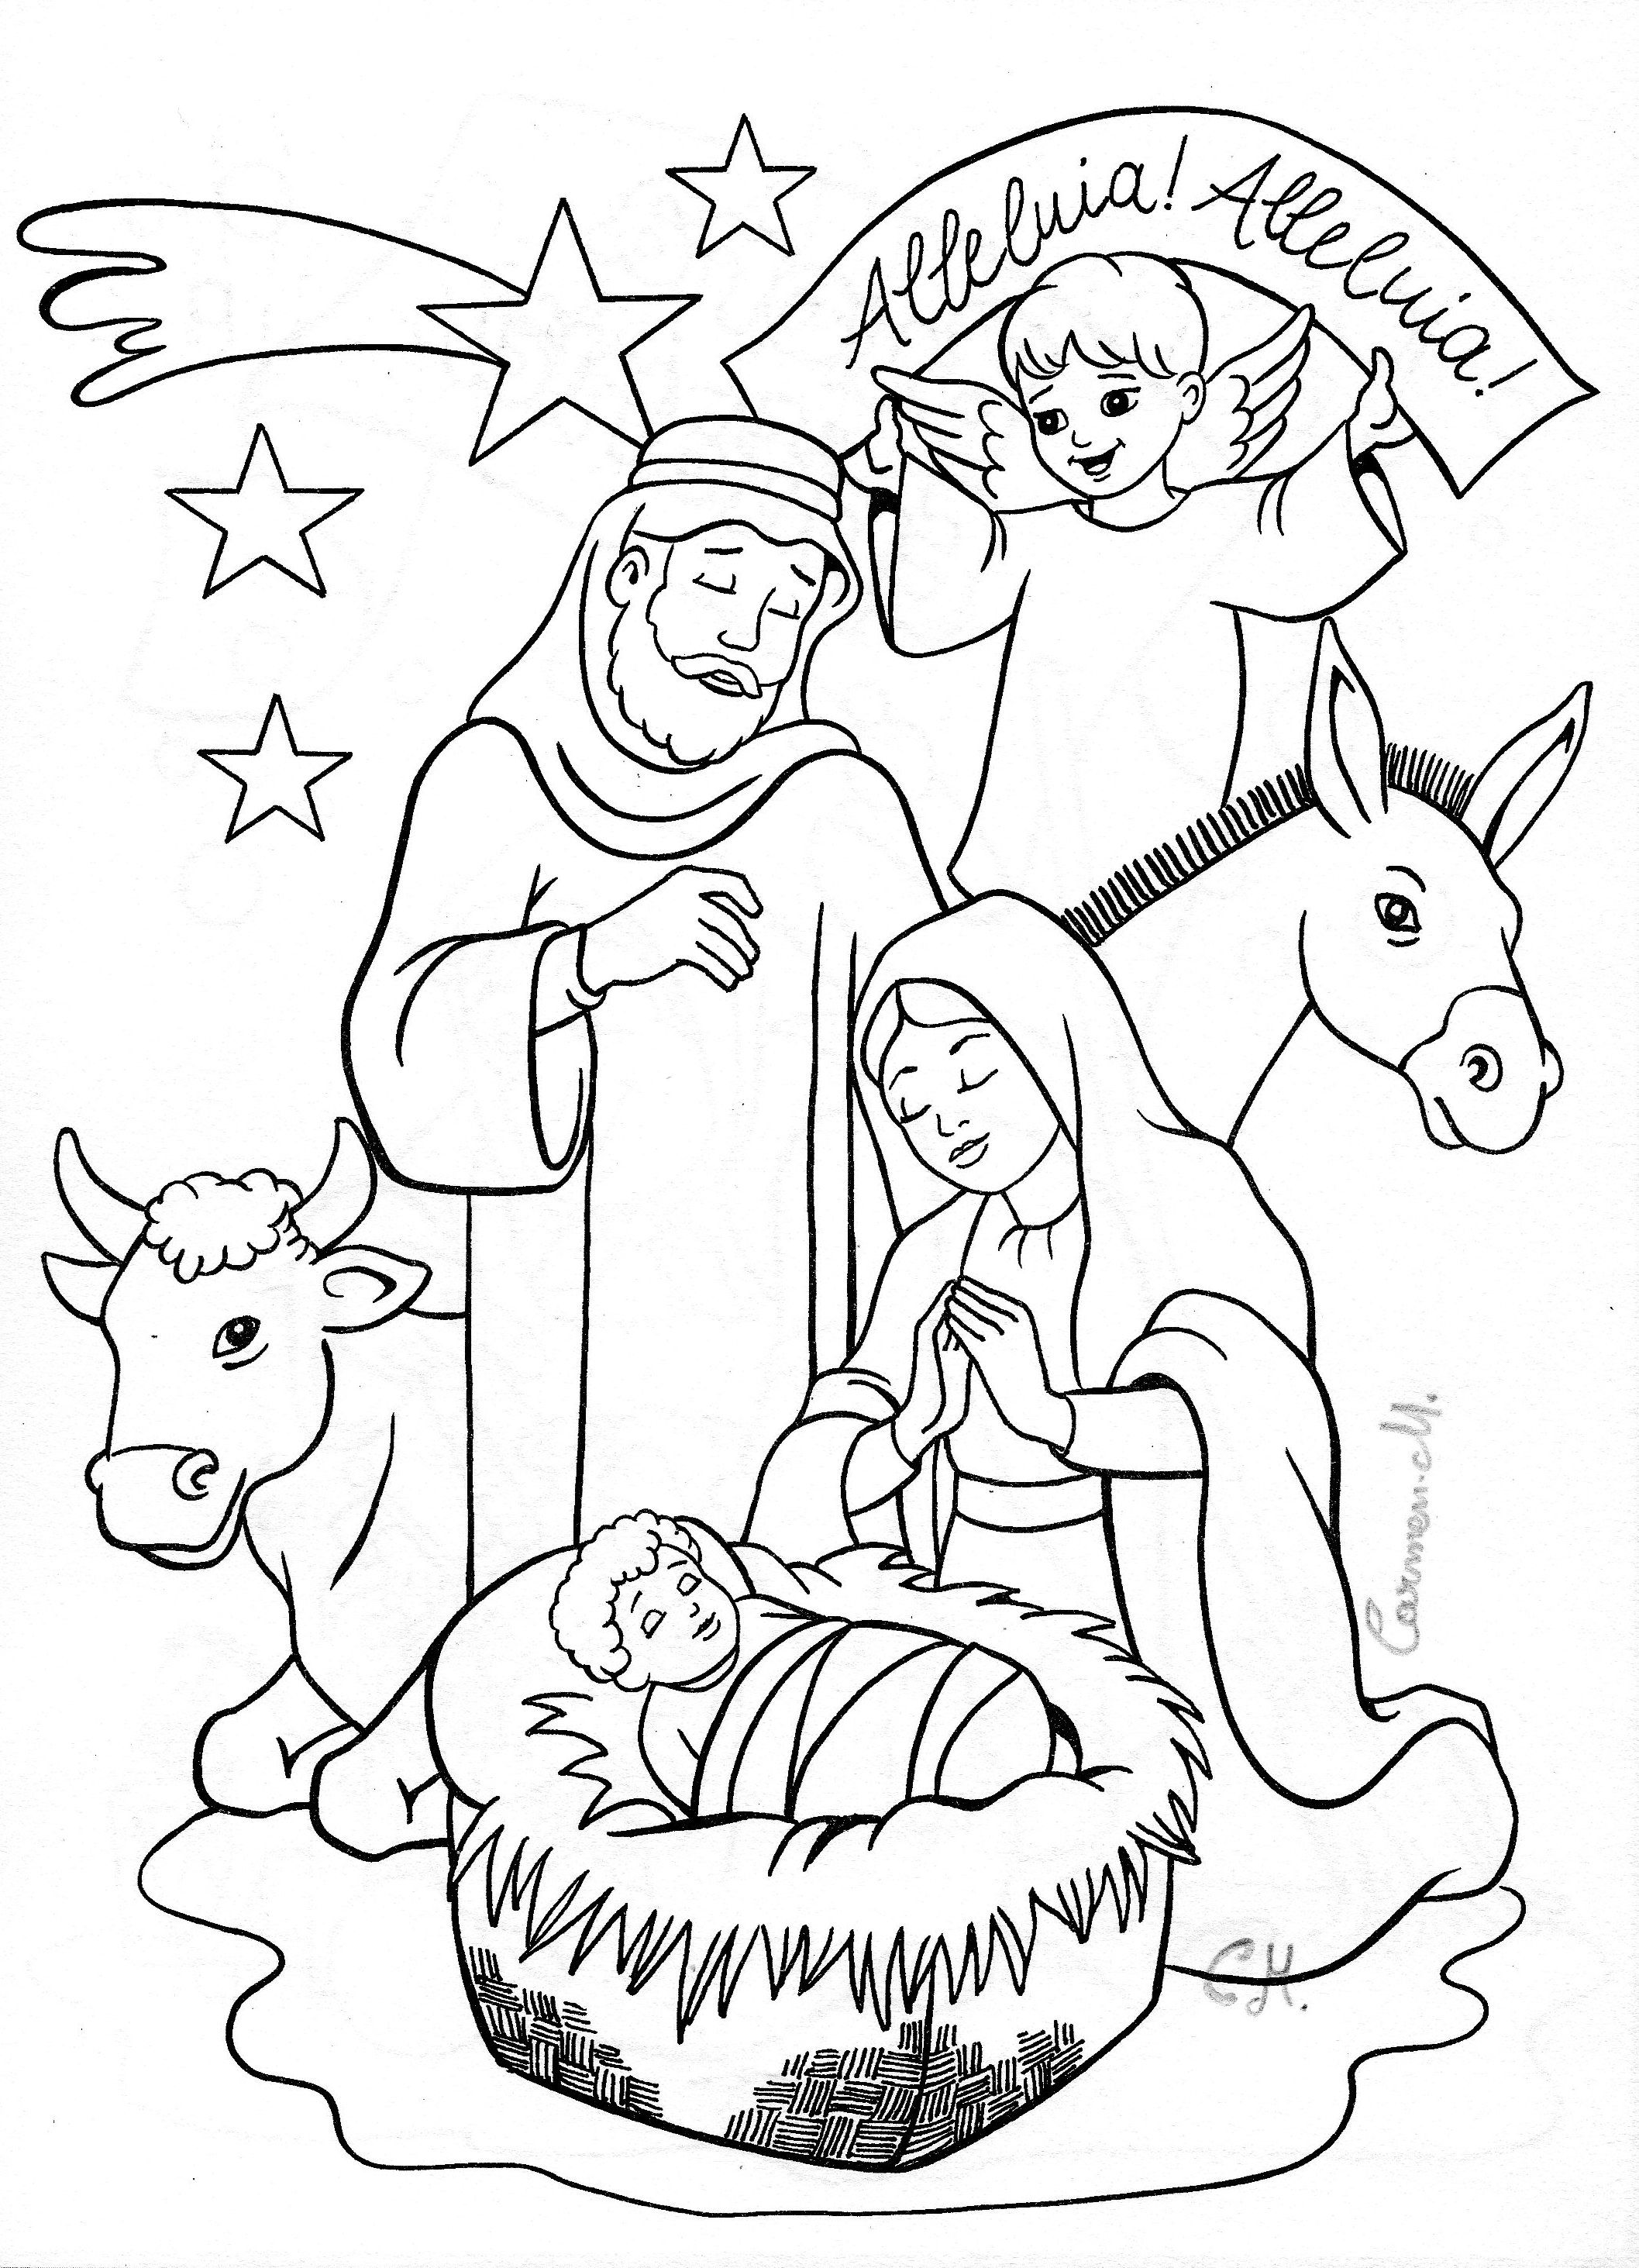 Nativity Coloring Page Christmas Coloring Pages Nativity